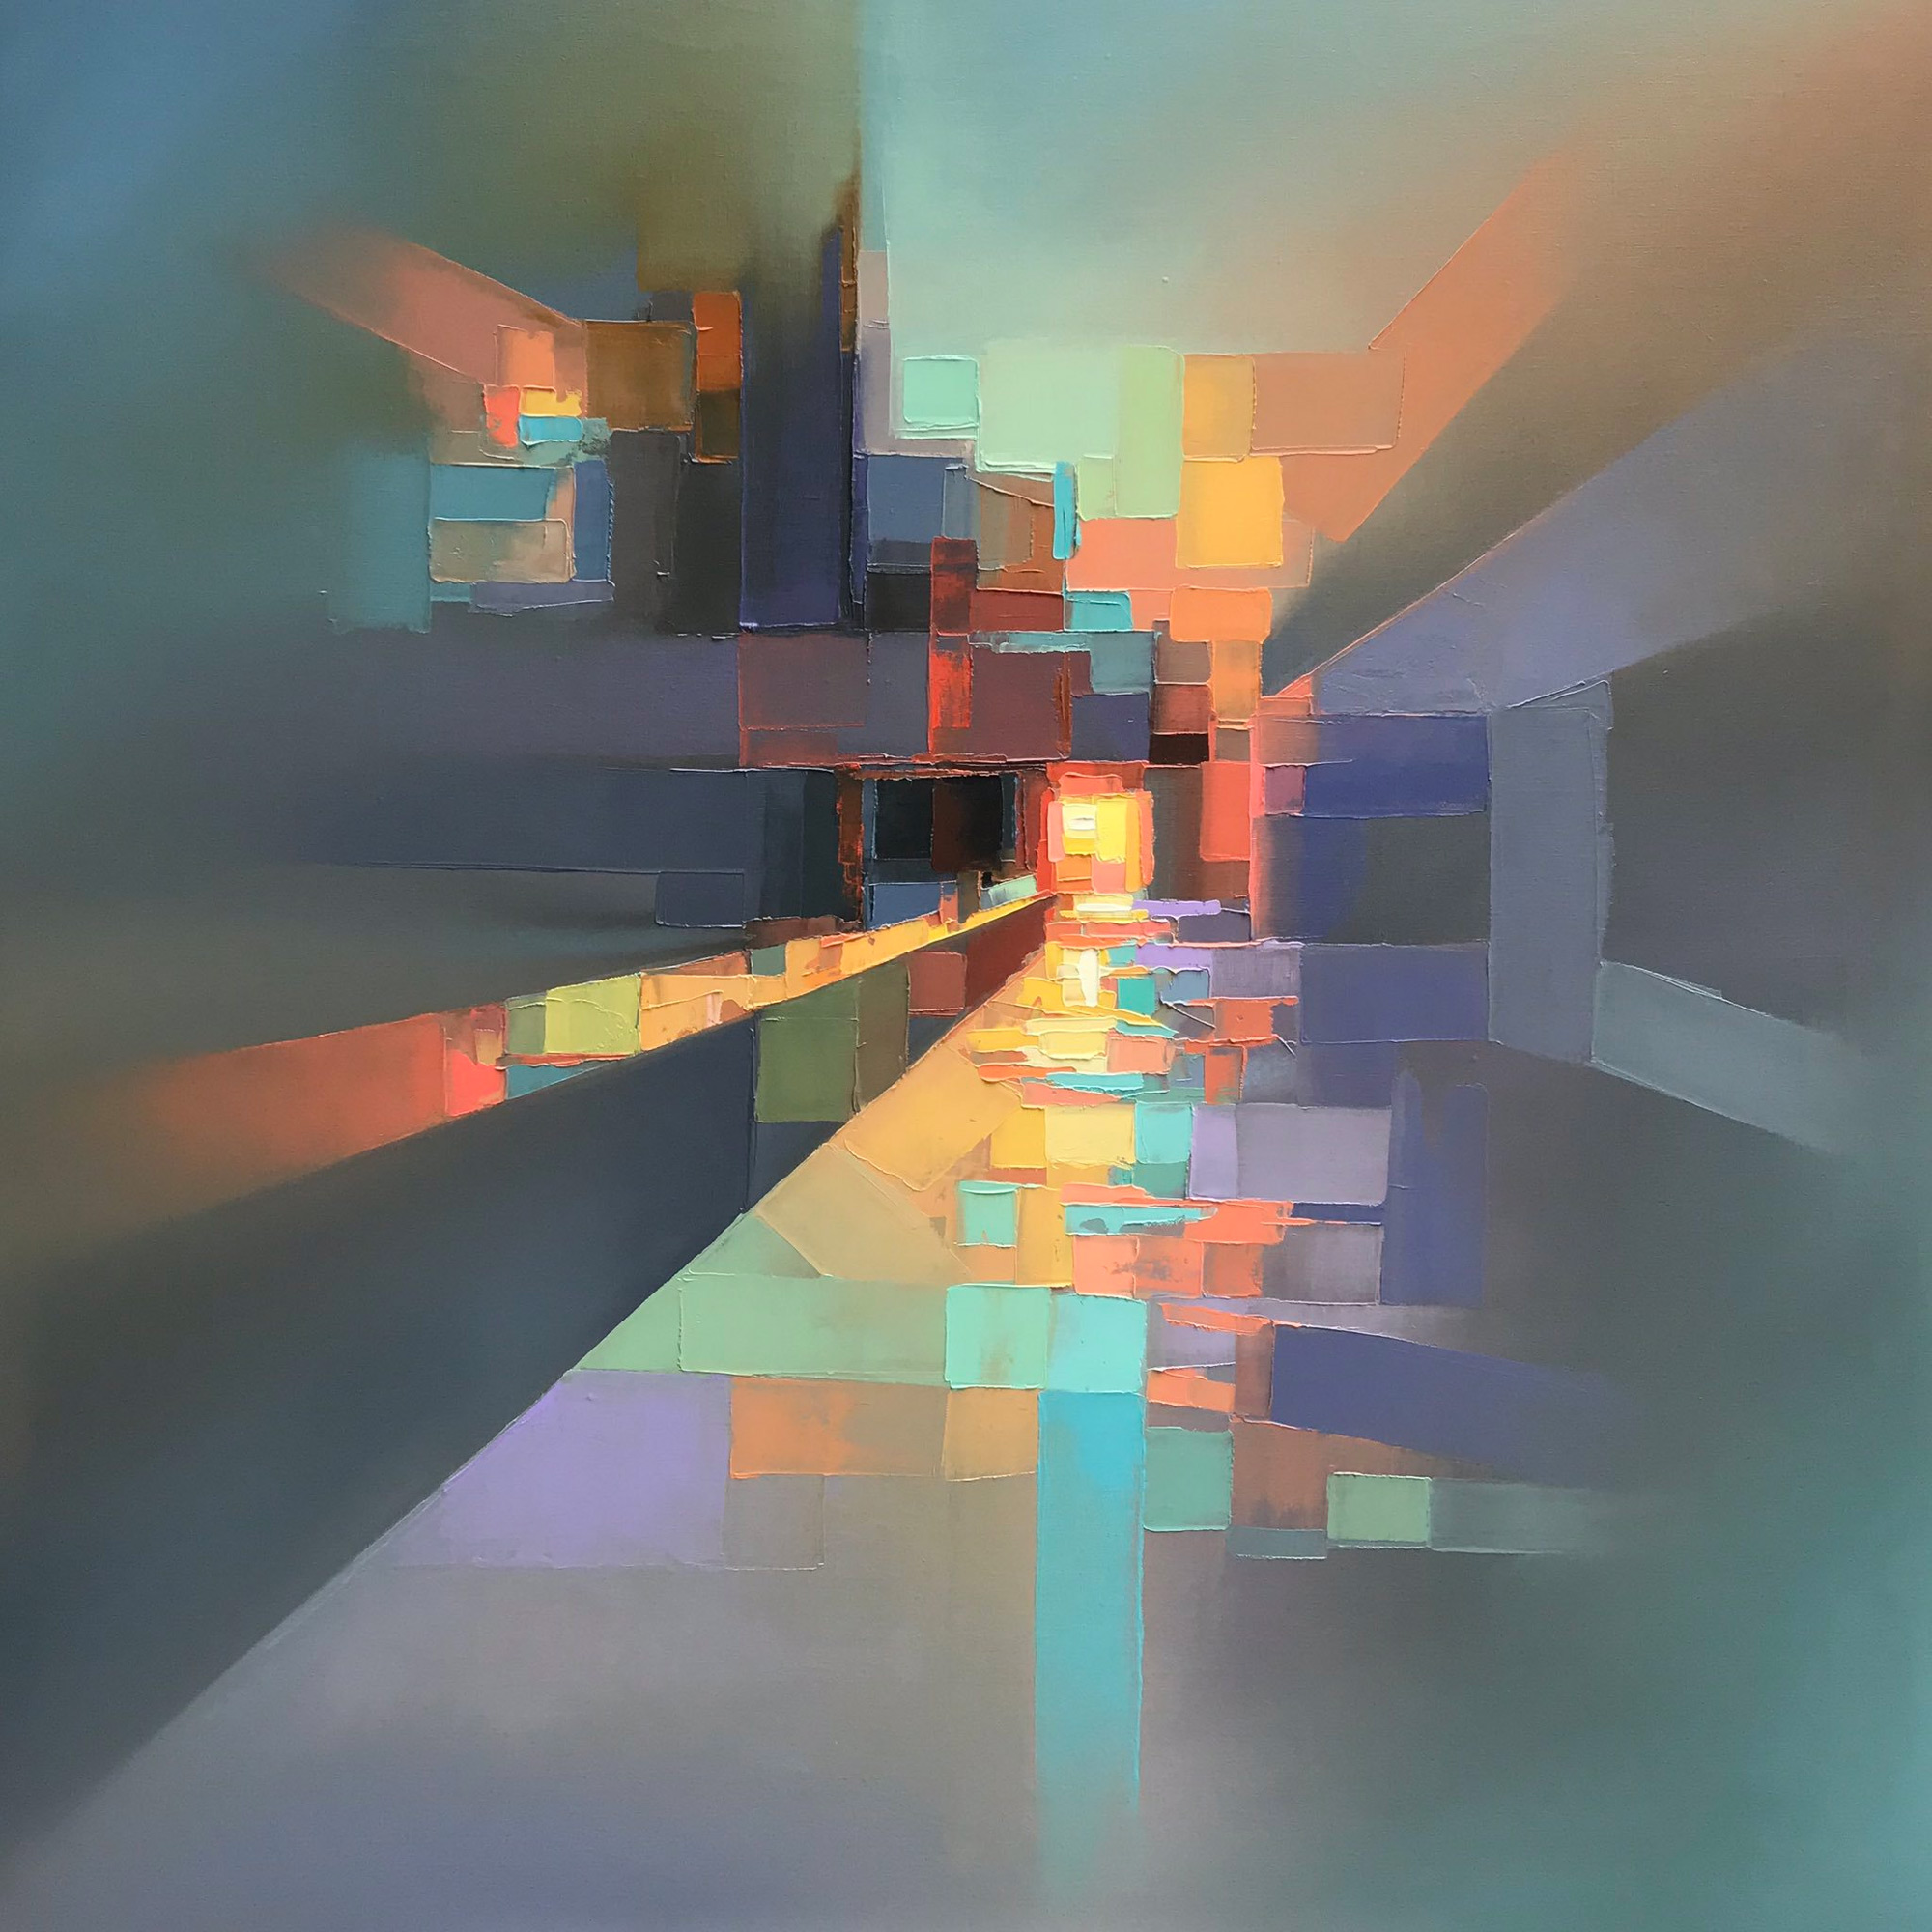 Landscapes By Jason Anderson Blend Precise Pixelation And